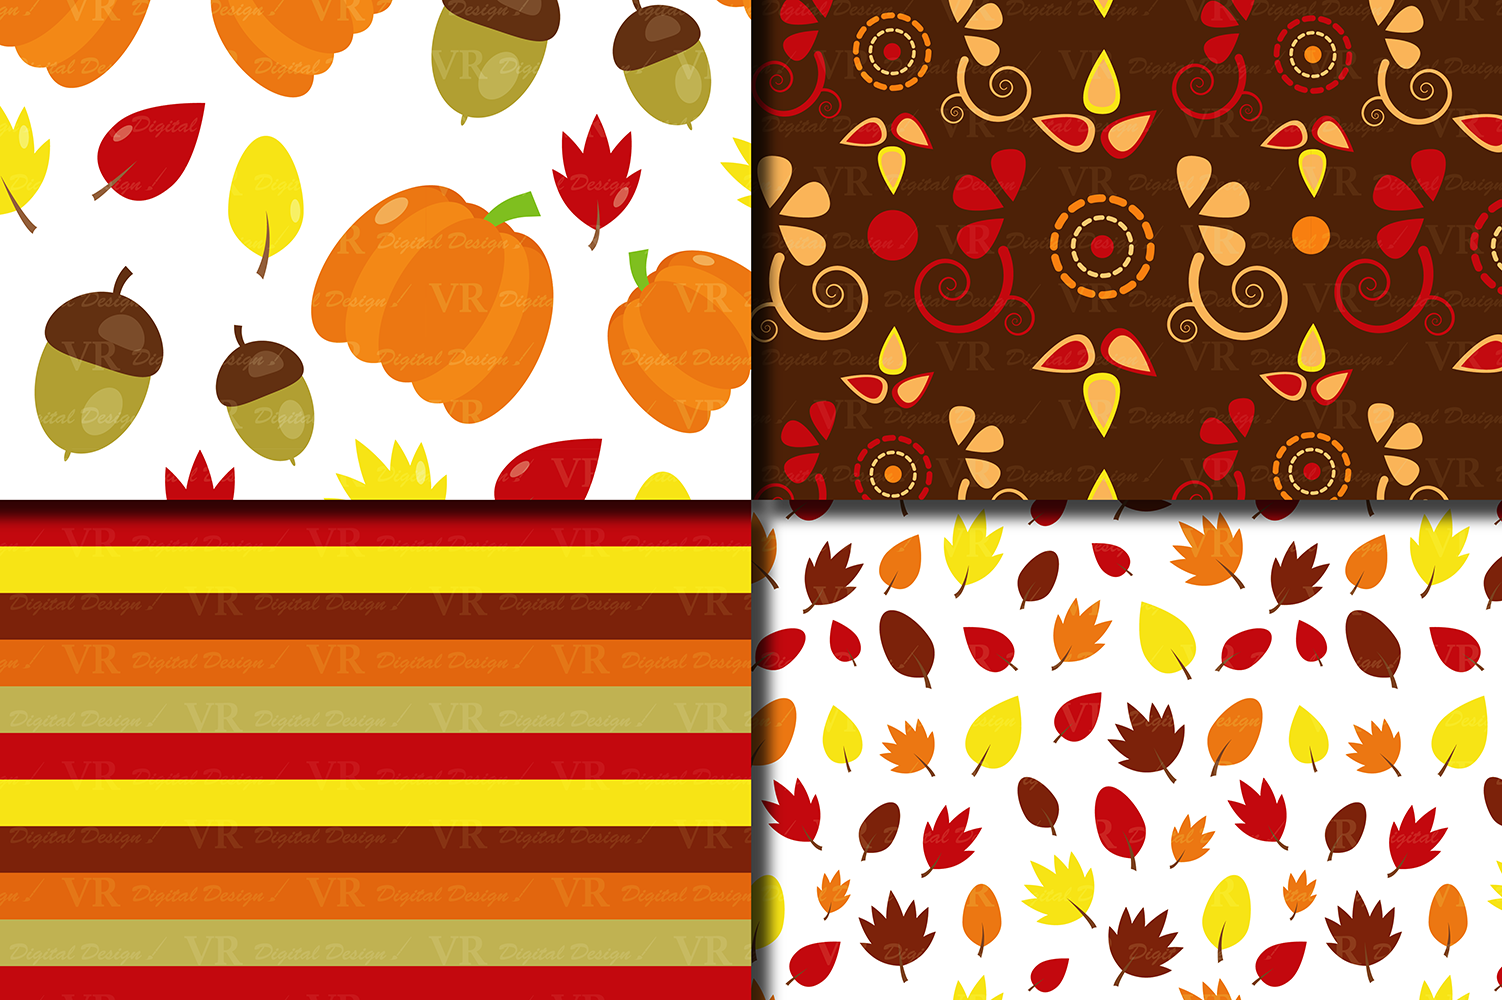 Autumn Digital Paper - Fall Patterns with Pumpkin, Acorn and Leaves example image 2